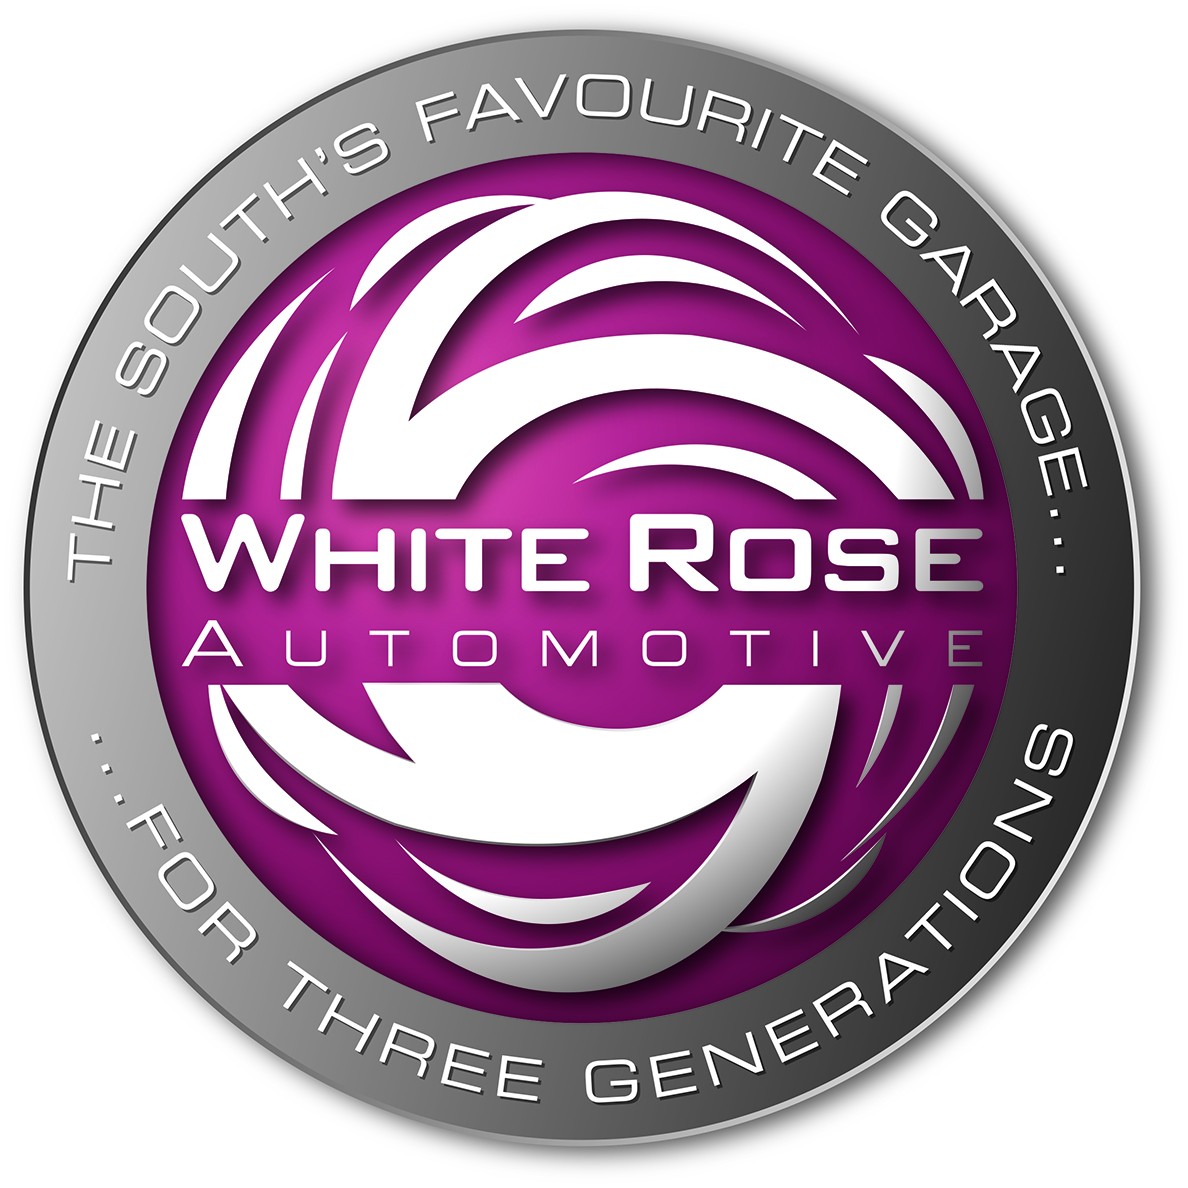 White Rose Automotive